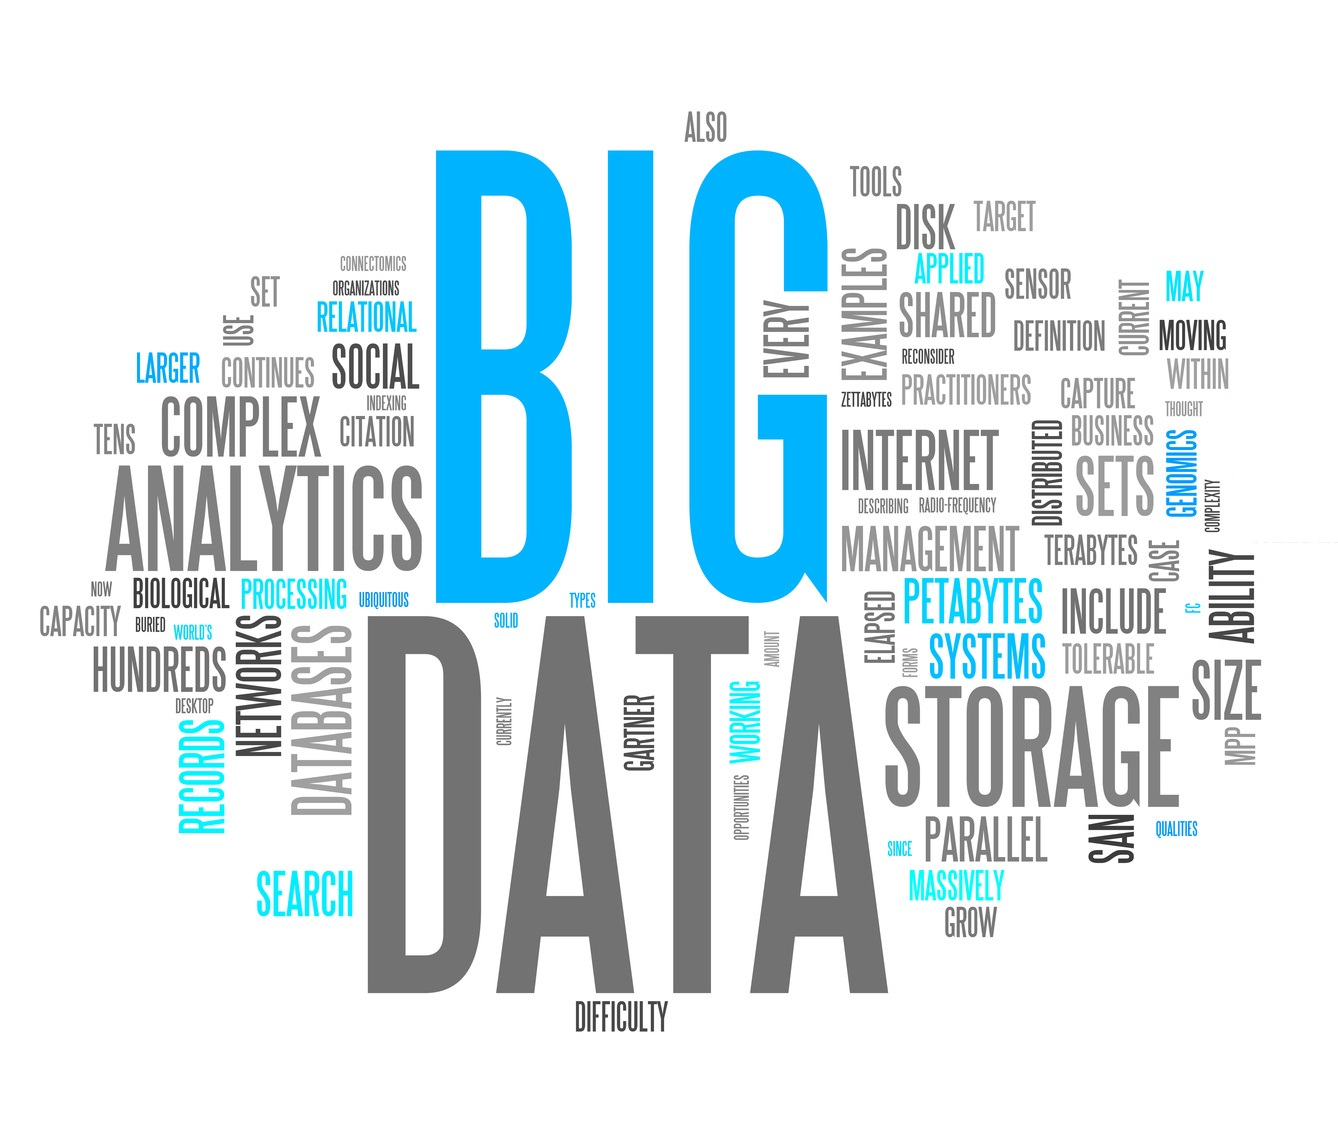 Big-Data/Hadoop